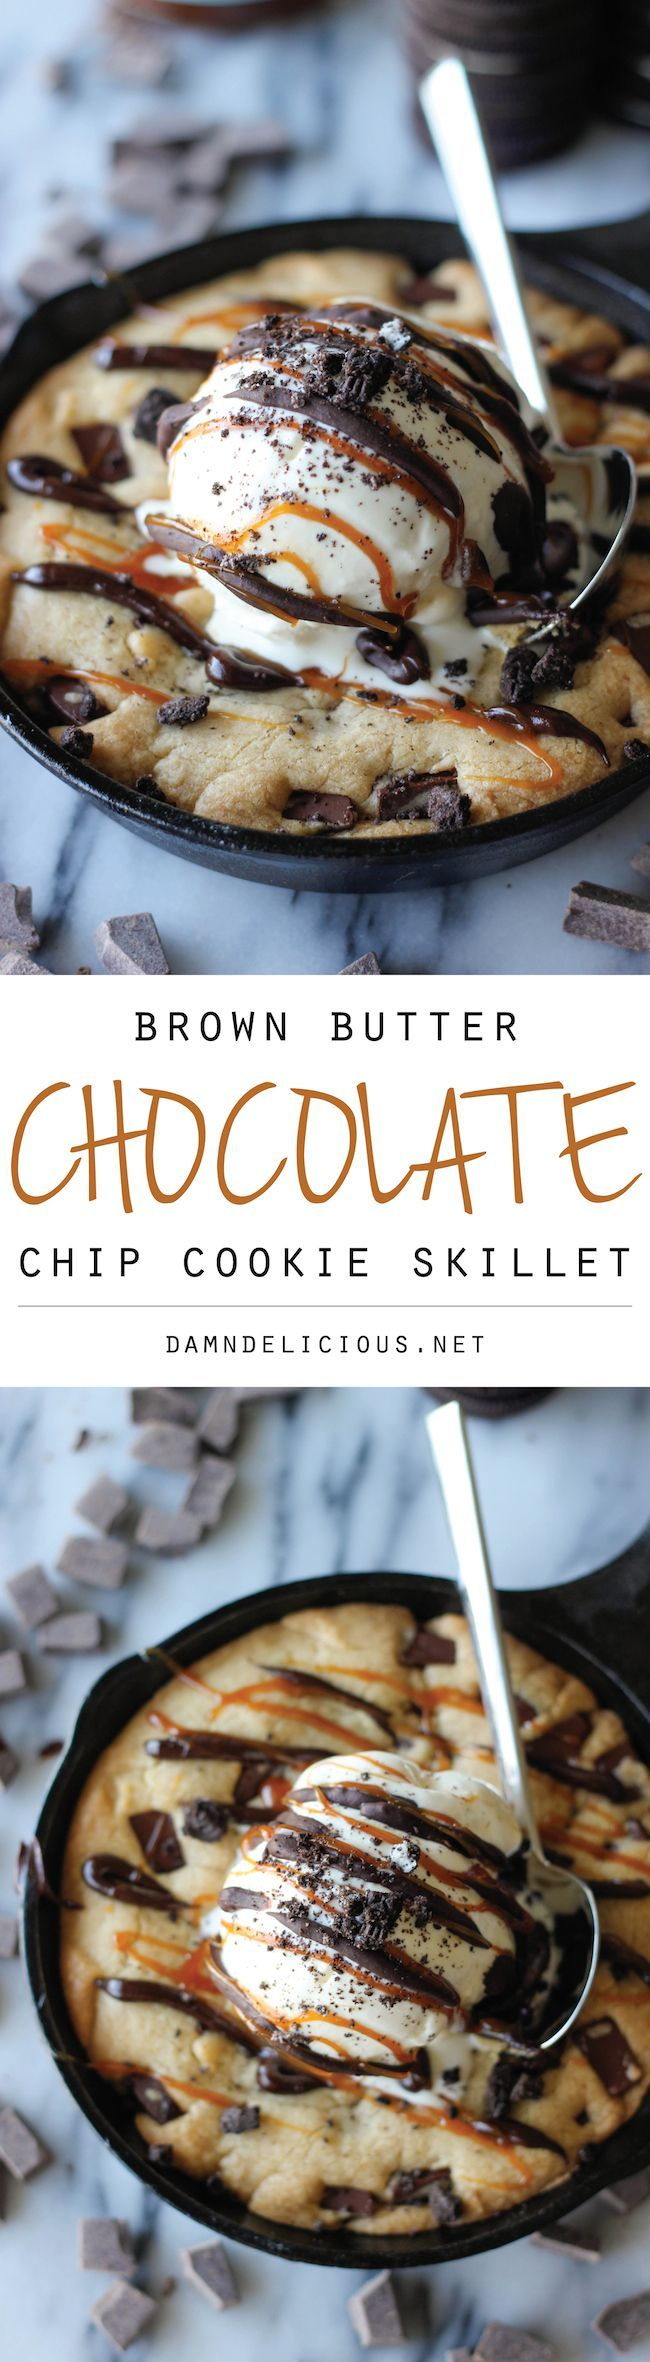 "Brown Butter Chocolate Chip Cookie Skillet (""Pizookie"") - No need to go to BJ's – you can make this brown butter pizookie right at home, and it tastes 100000x better!"